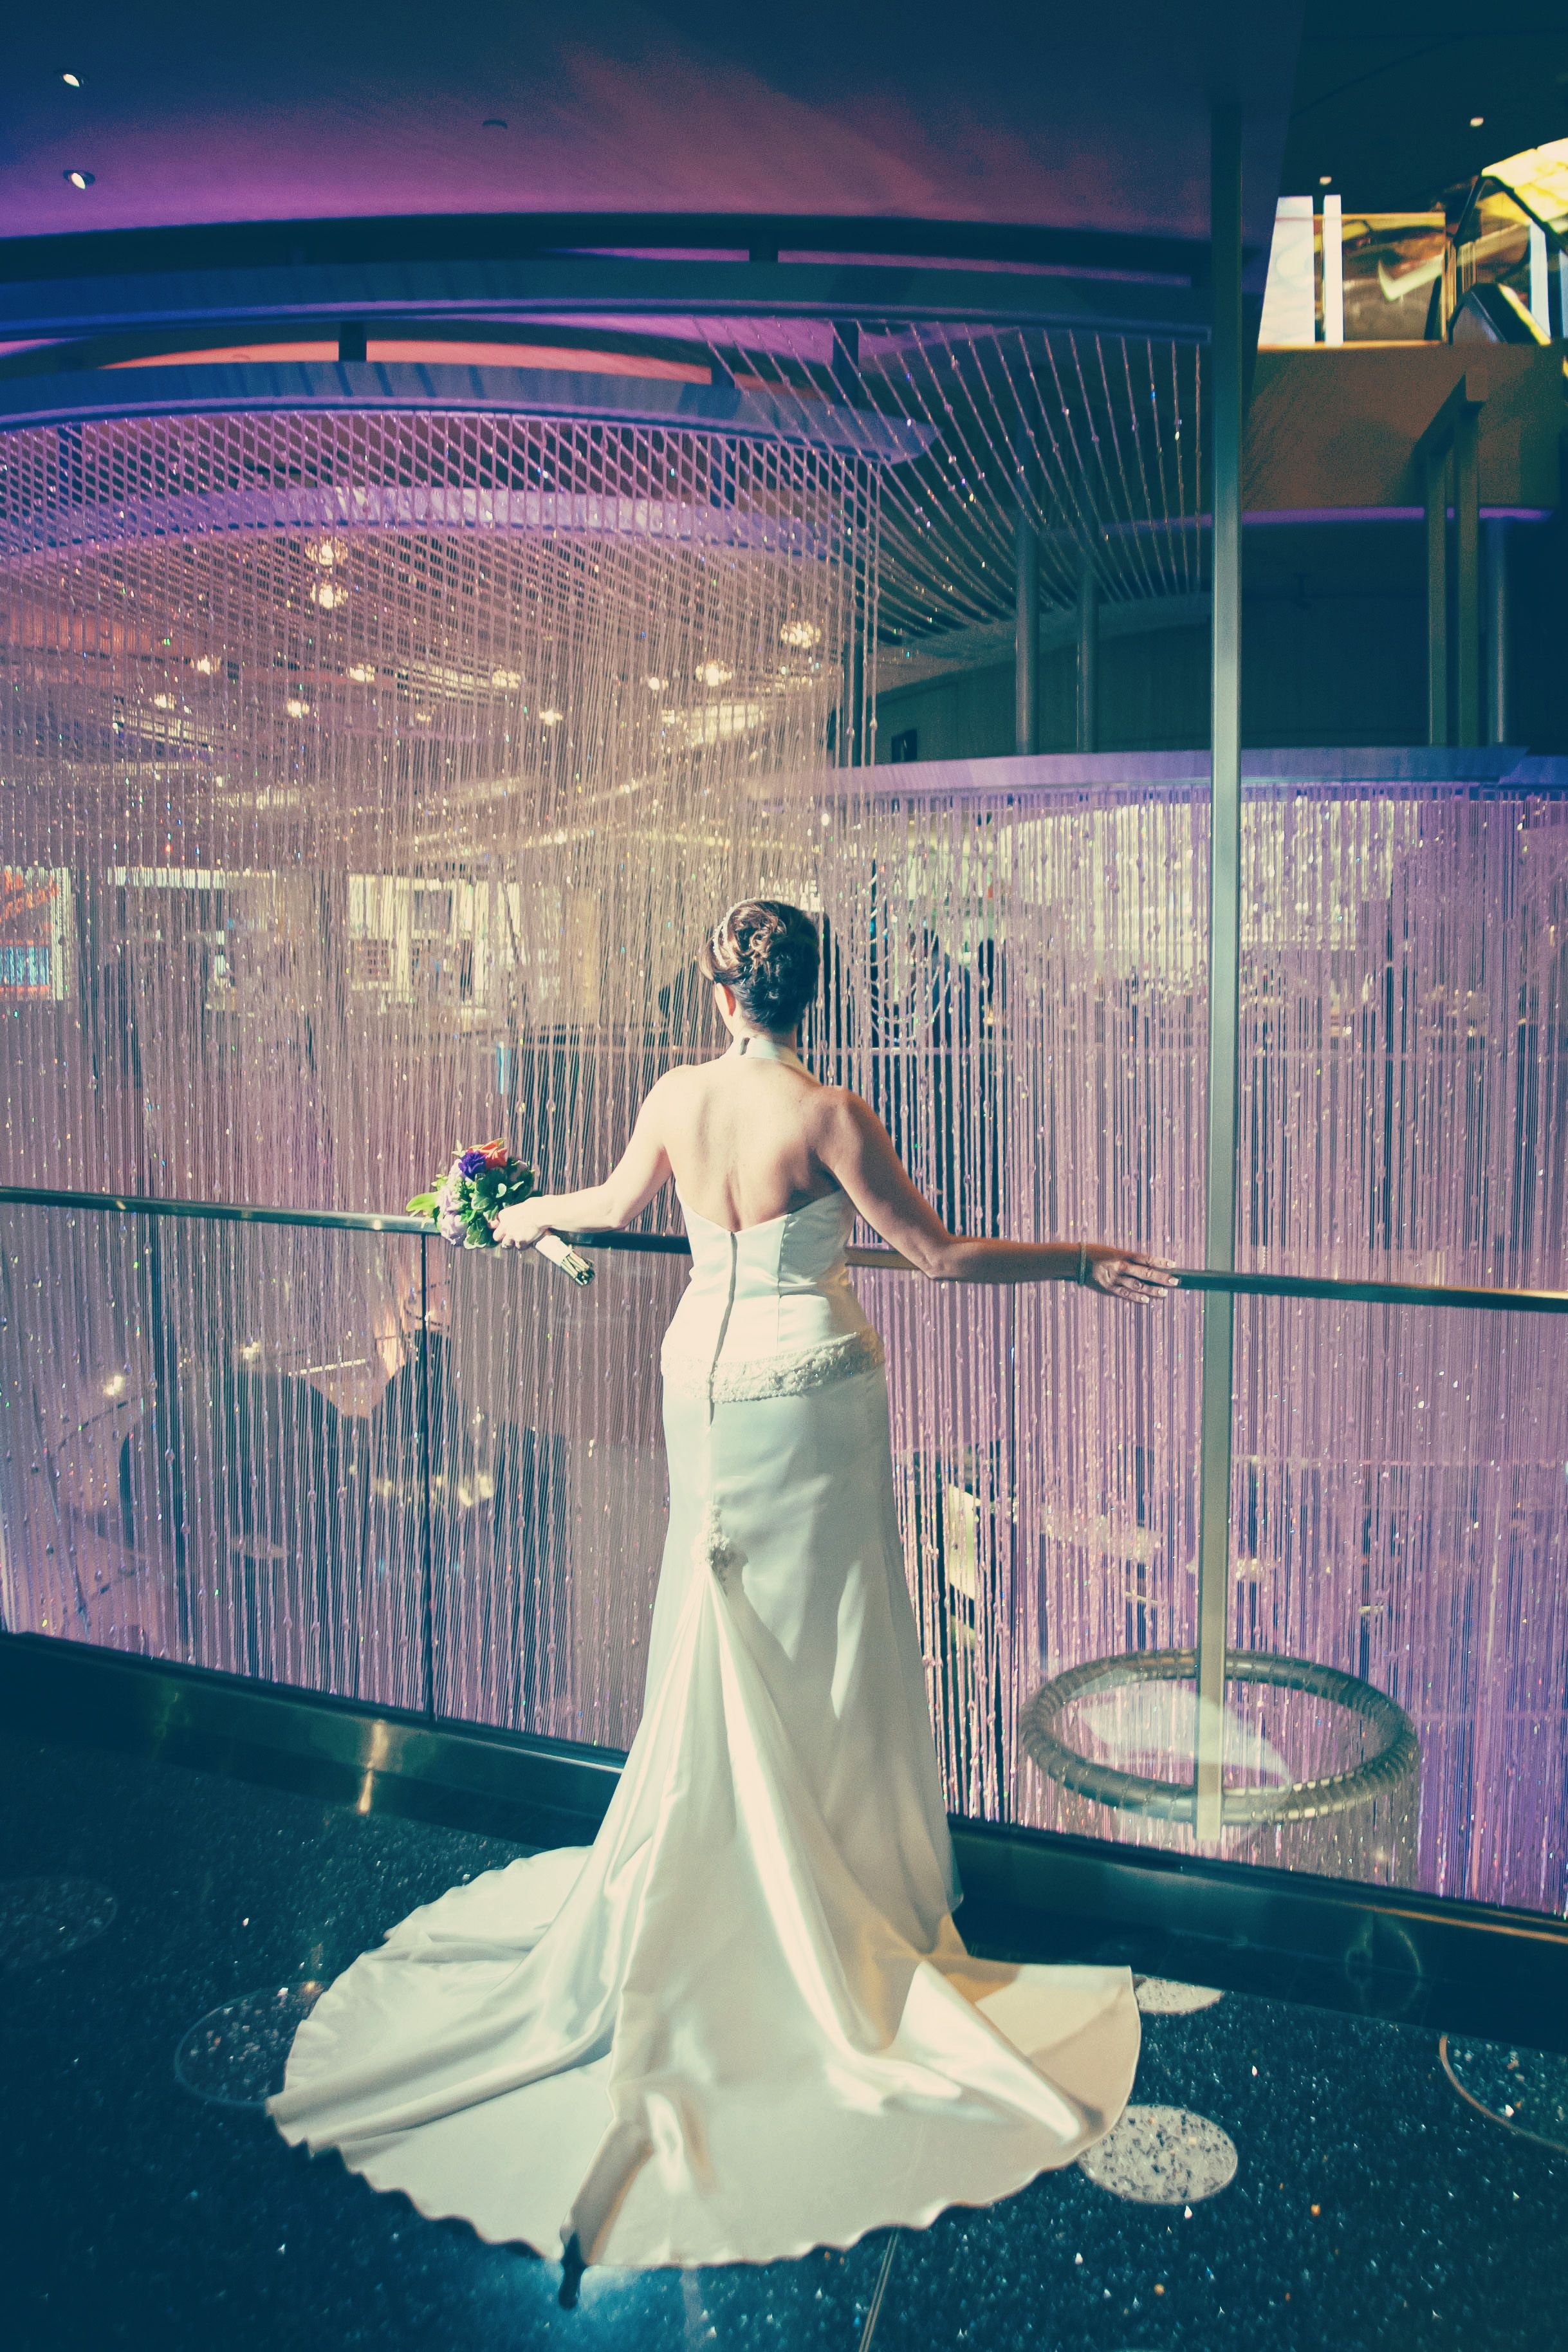 The Chandelier Makes A Dramatic Backdrop For Wedding Photos Planning Your Wedding Contact Our Top Wedding Photos Las Vegas Wedding Venue Vegas Wedding Venue